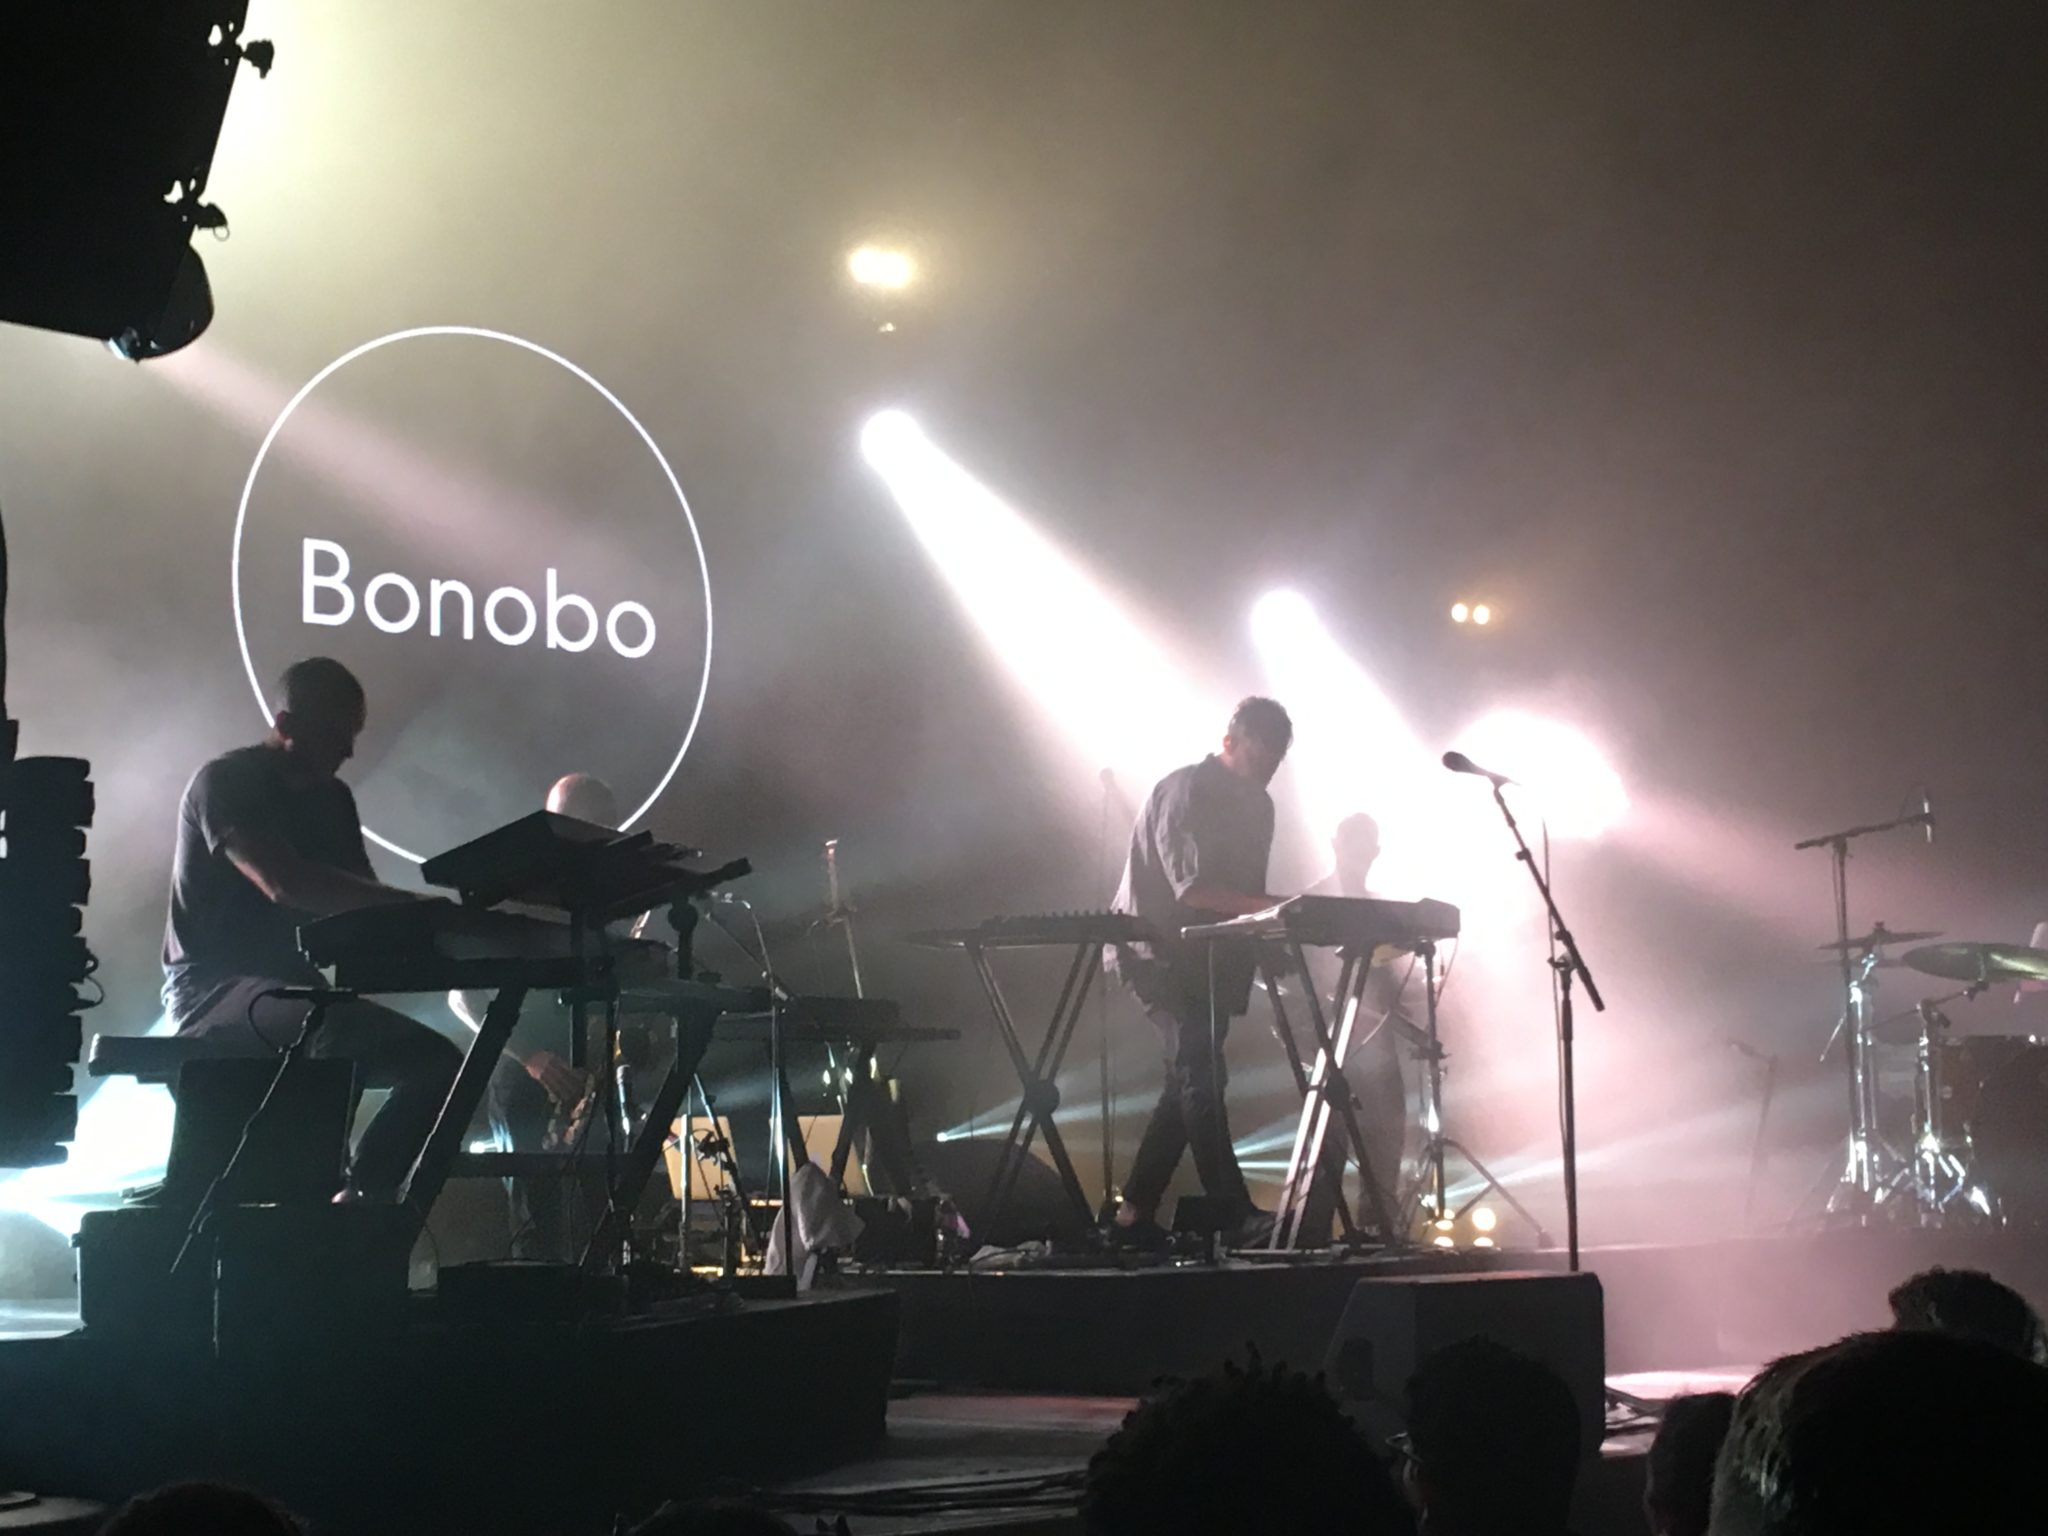 Concert Review: Bonobo and Jeremy Sole